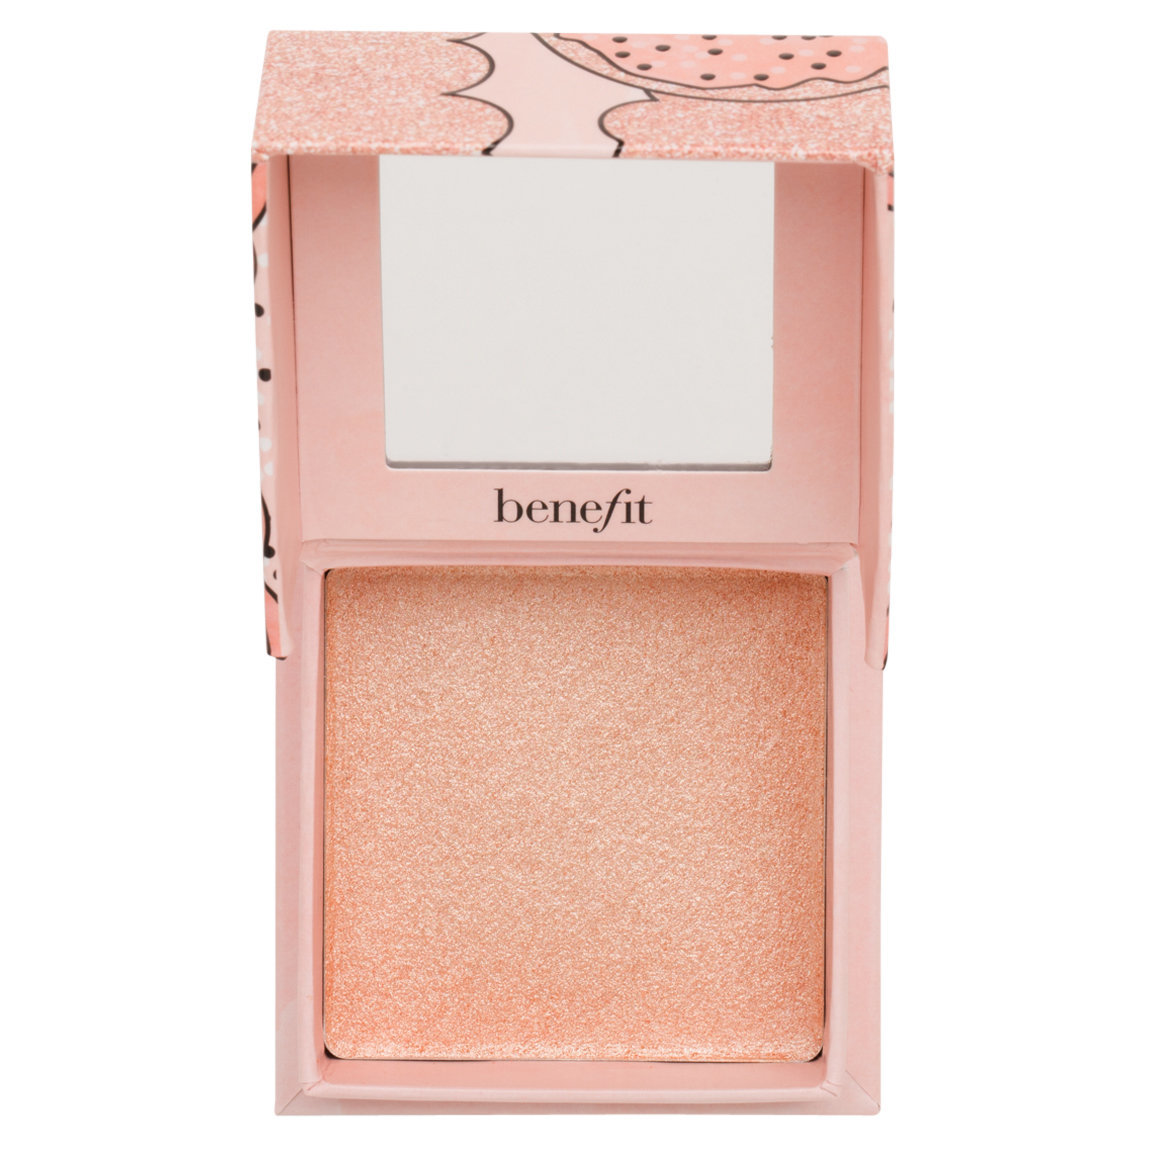 Benefit Cosmetics Cookie Powder Highlighter product swatch.